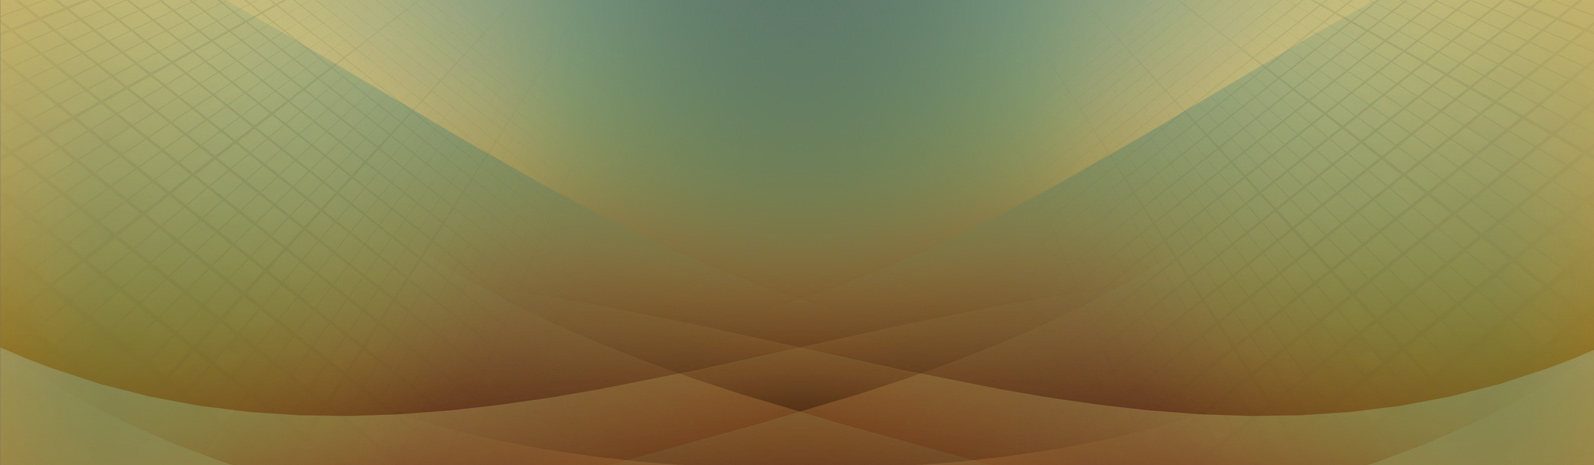 01-SLIDER-Background